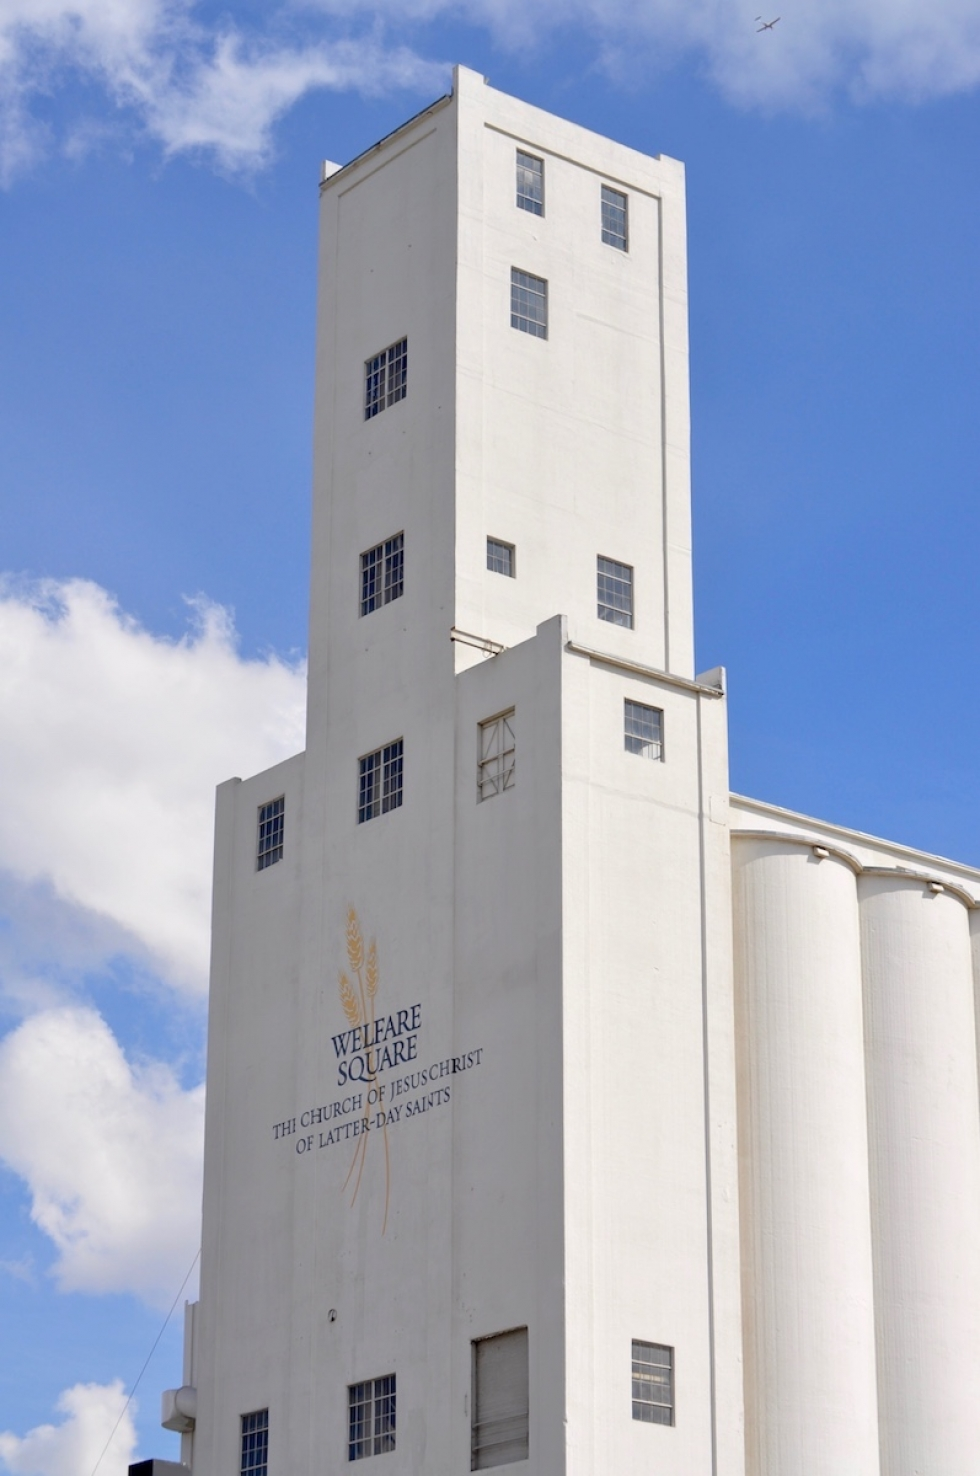 The iconic,178-foot bread silo of Welfare Square rises above the west side of Salt Lake City, on the edge of Poplar Grove and what is now called the Granary District. The Church of Jesus Christ of Latter-Day Saints established its welfare program in 1936, eighty years ago.